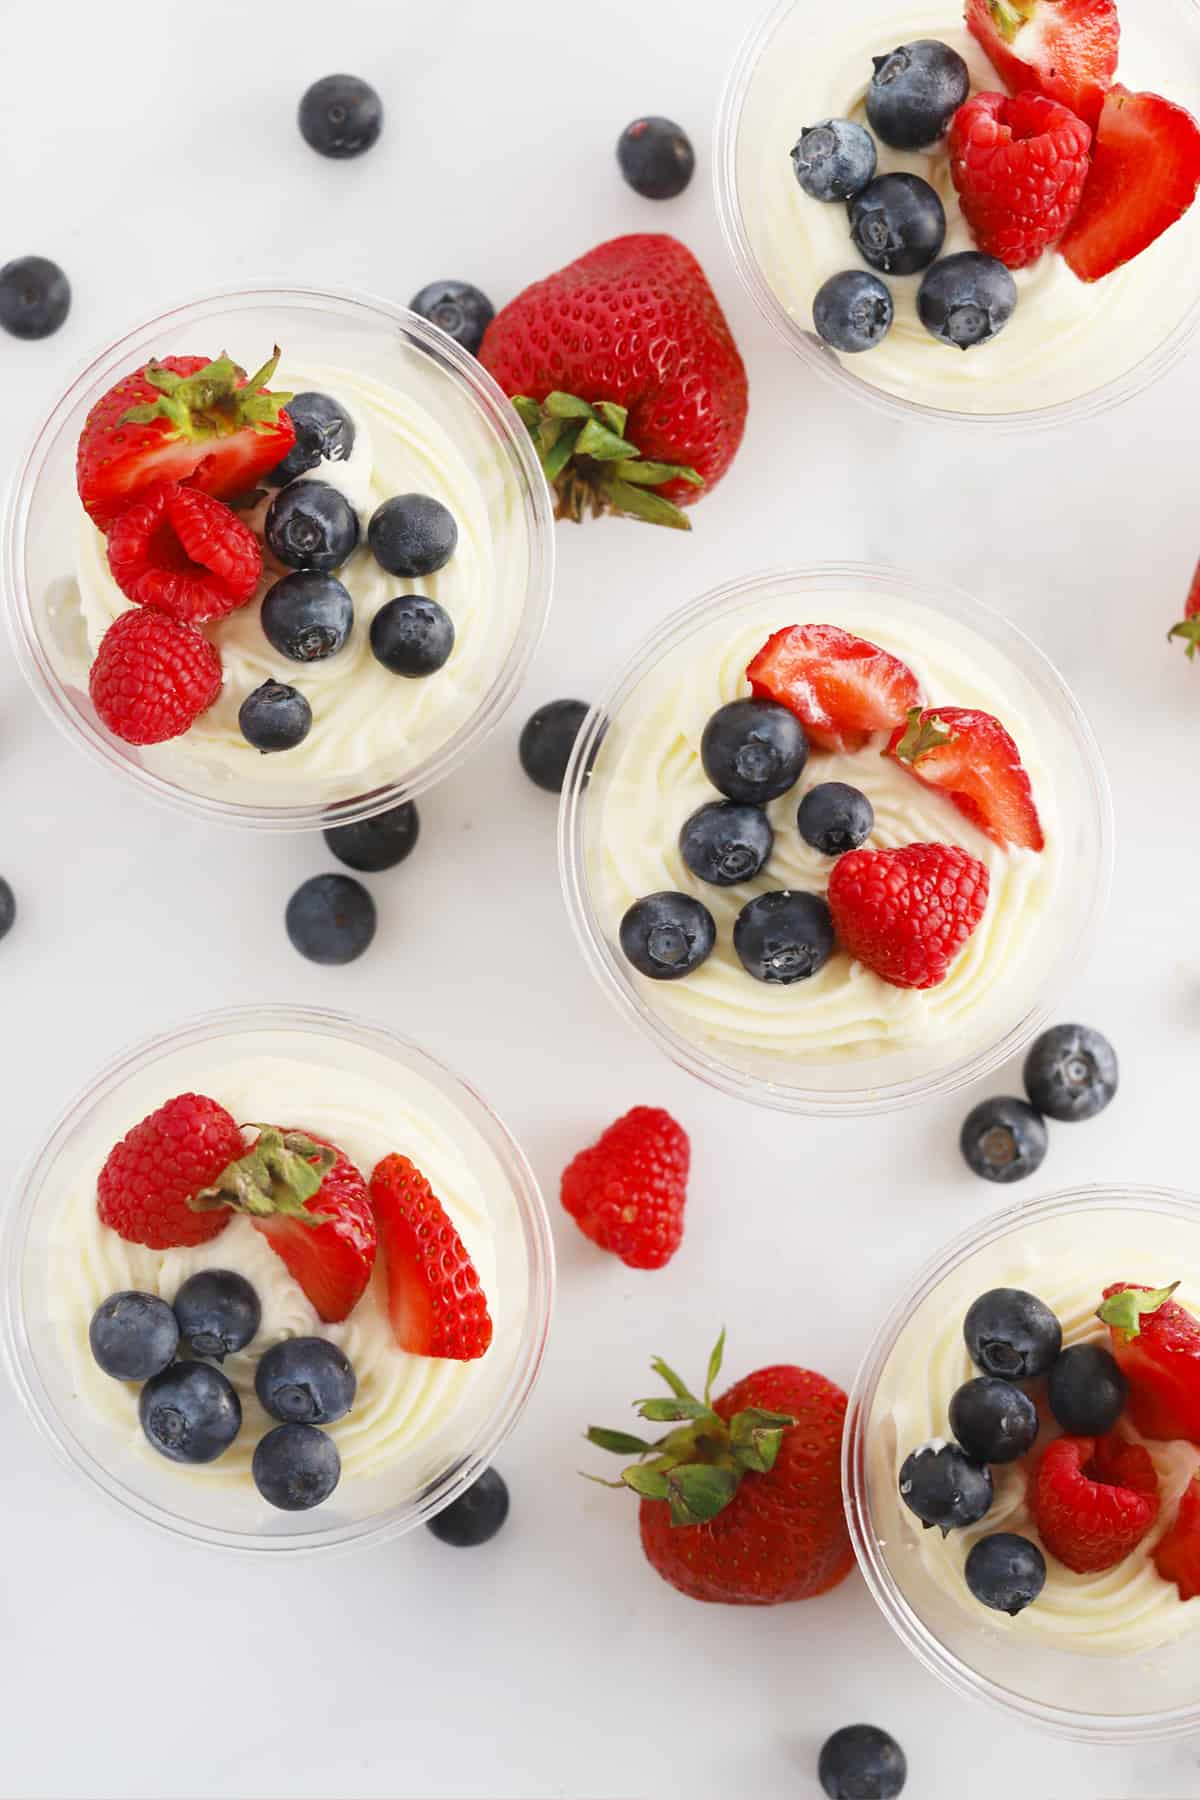 Individual cheesecakes in plastic cups, topped with fresh strawberries and blueberries.